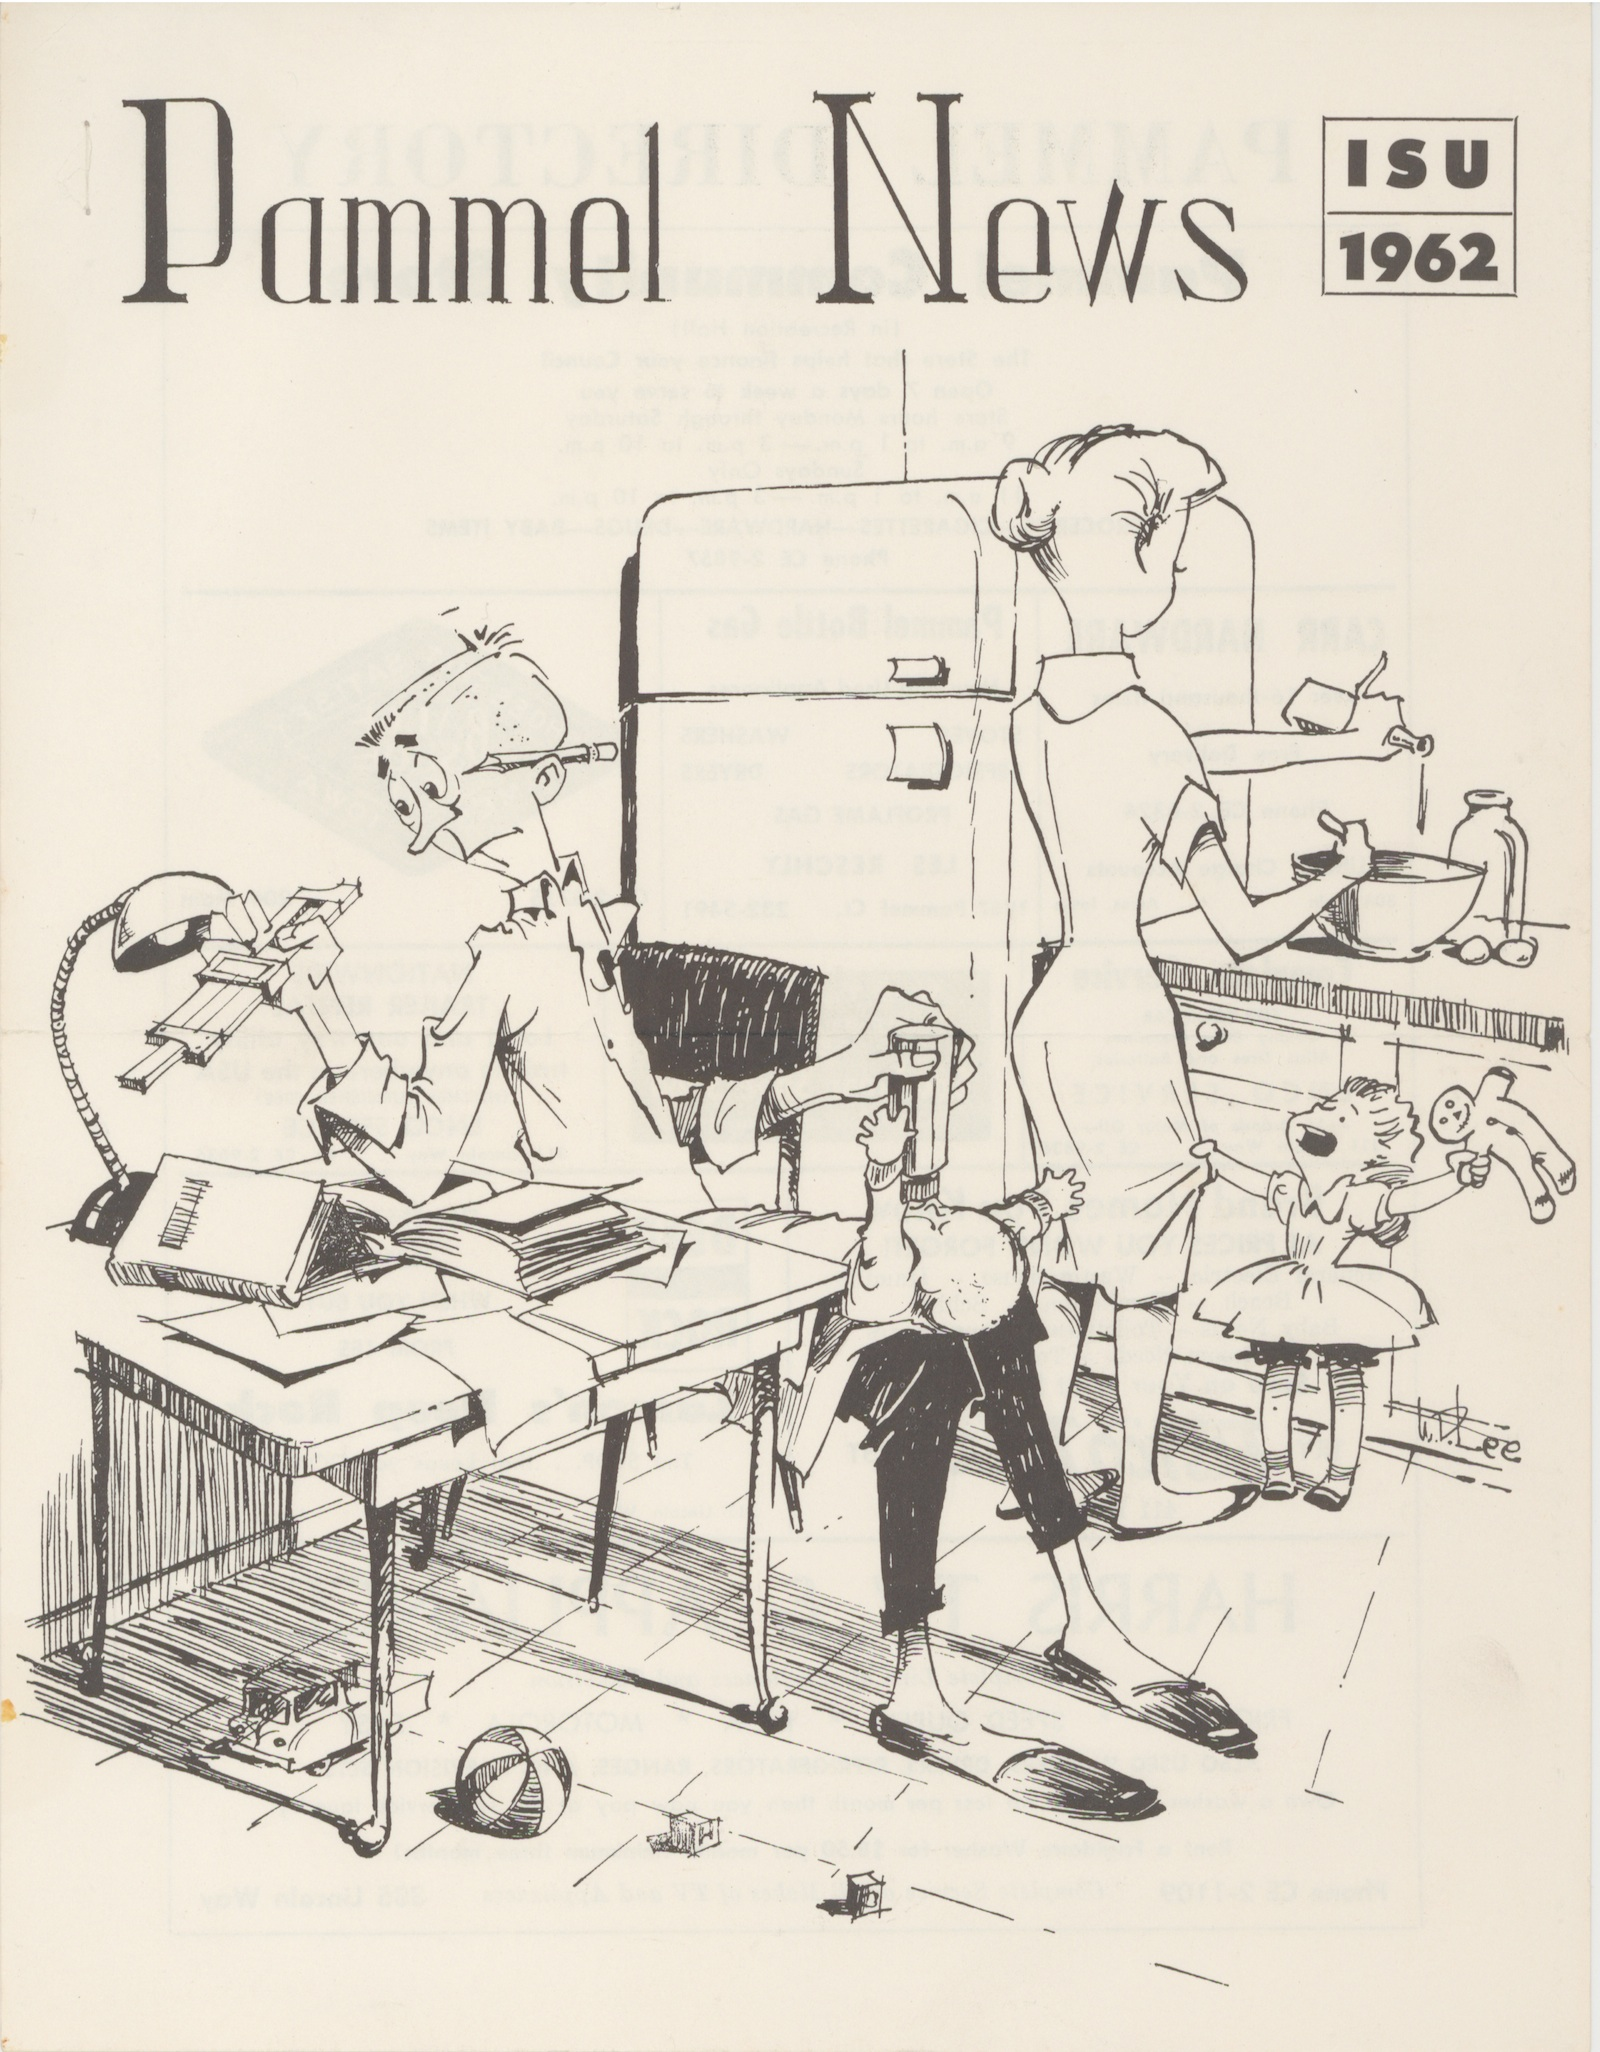 Illustrated cover of the Pammel News 1962.